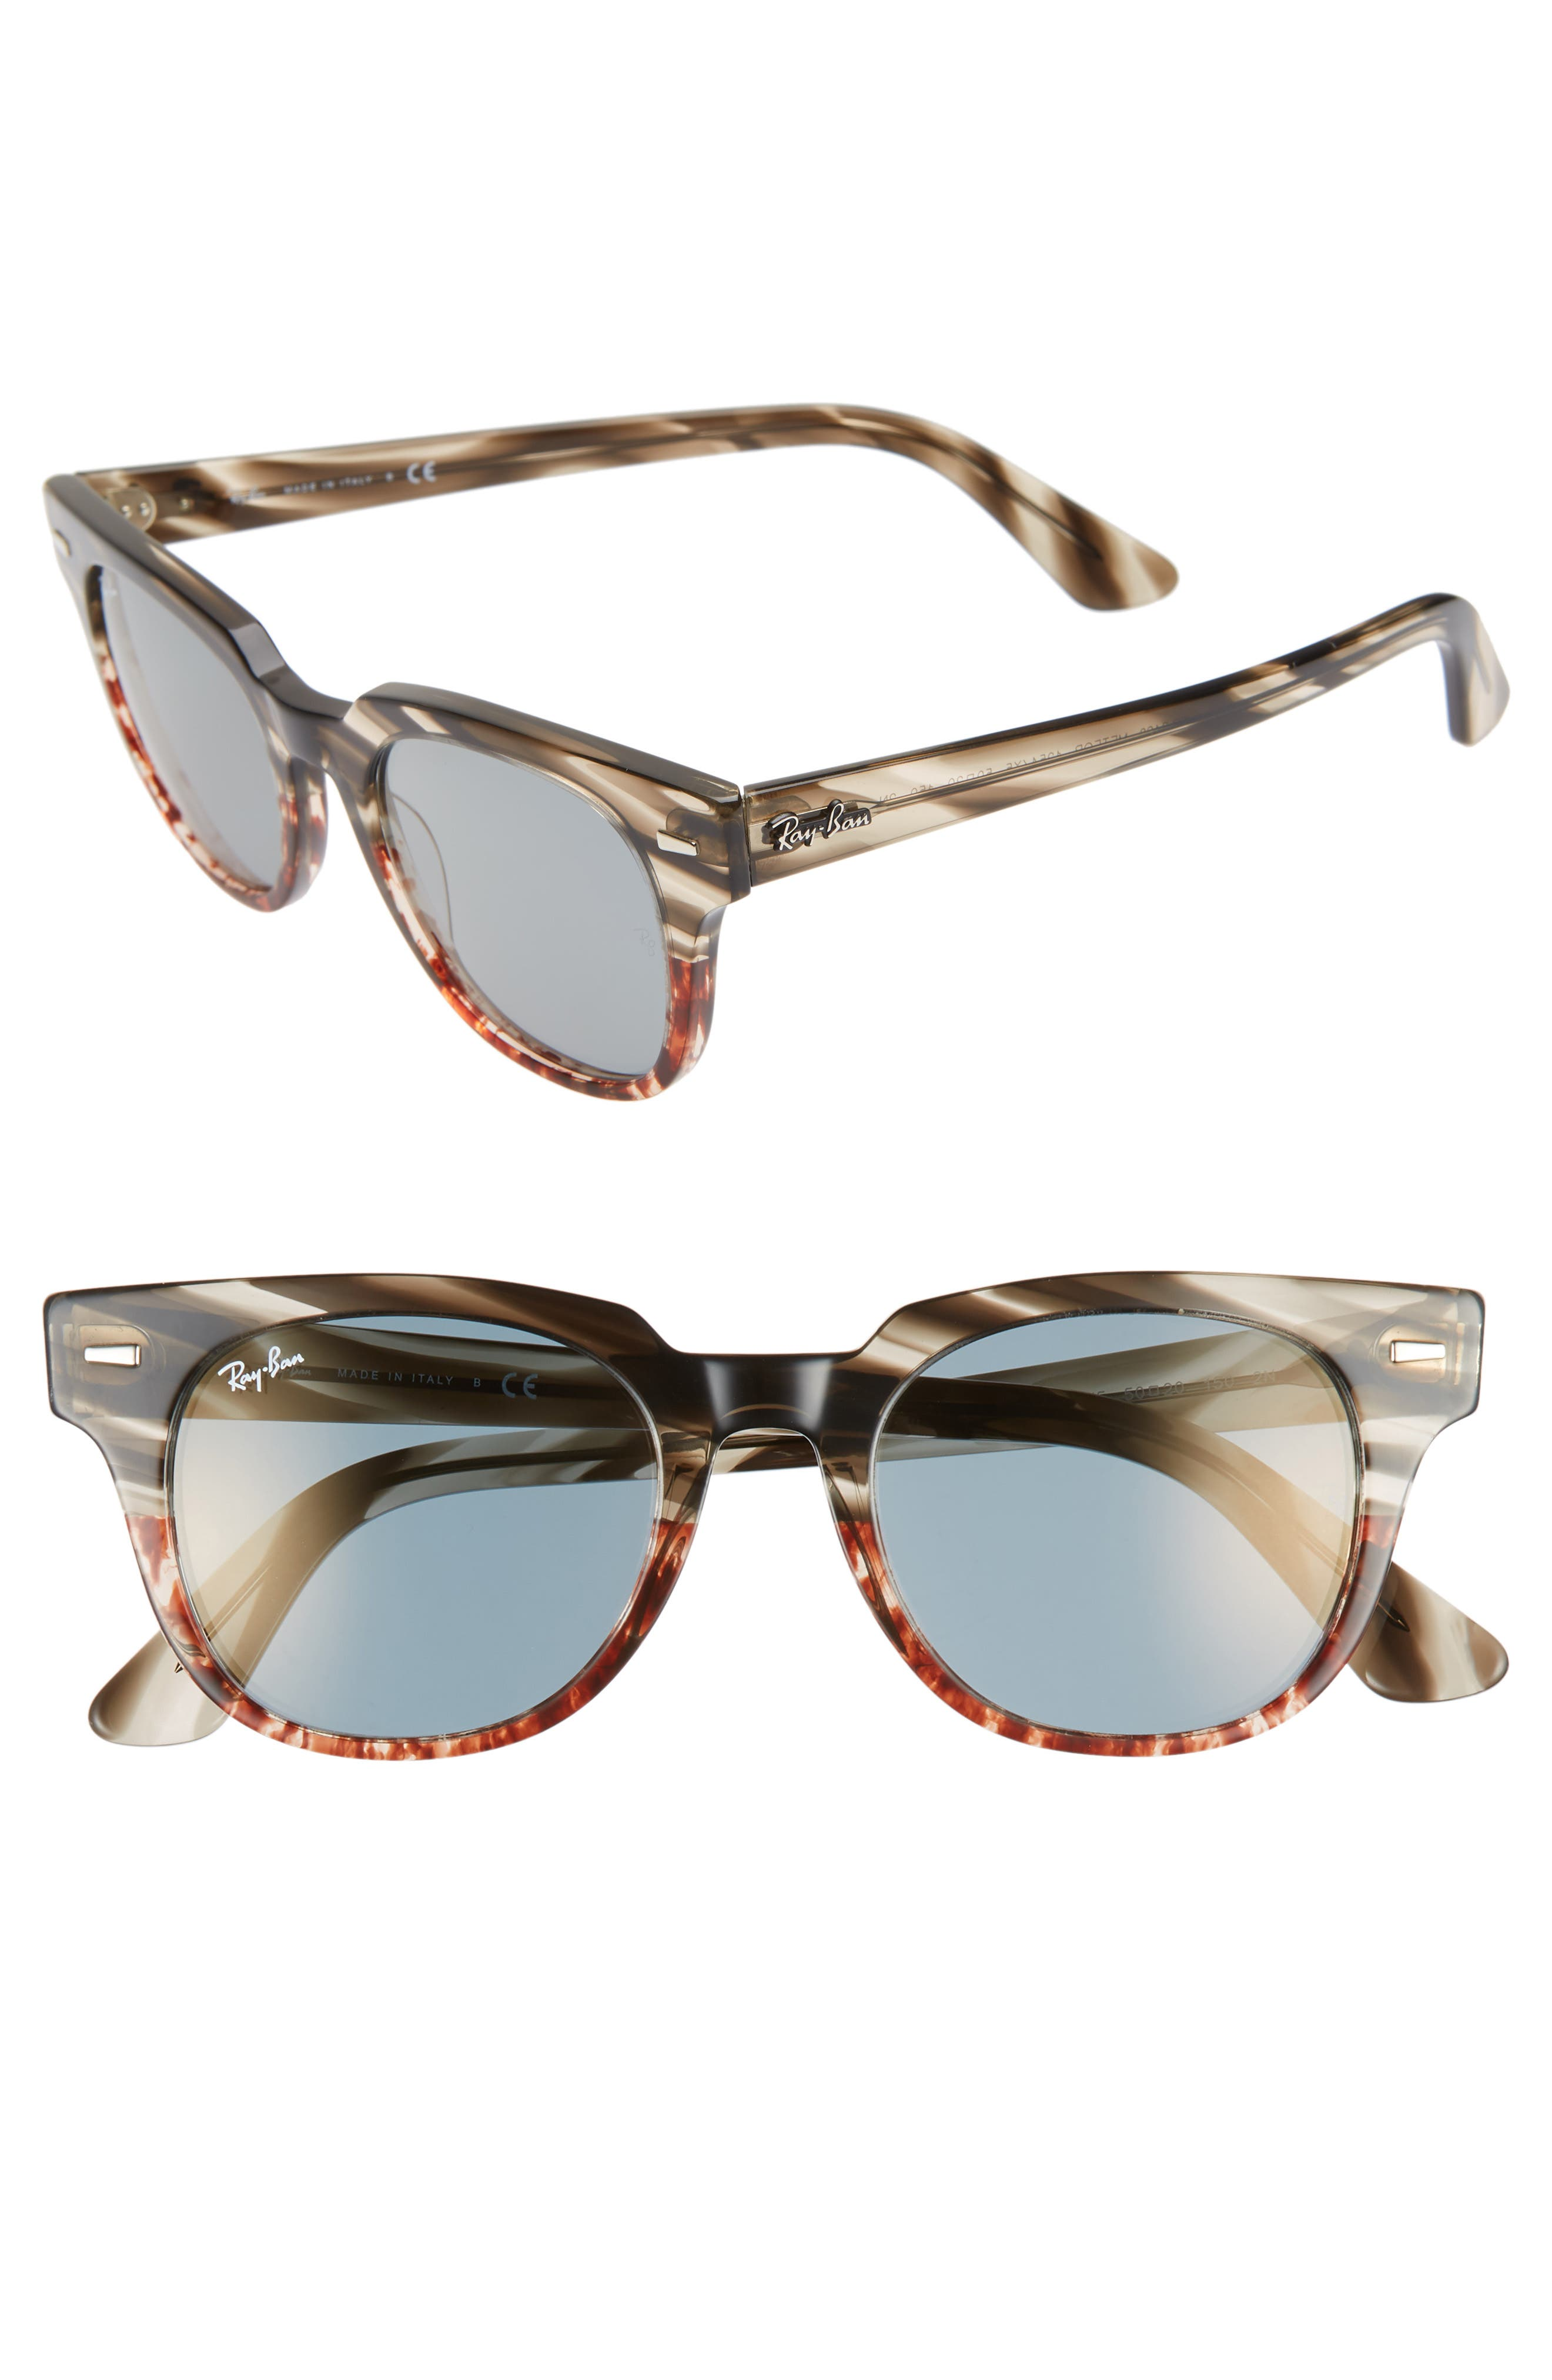 Meteor 50mm Mirrored Wayfarer Sunglasses,                         Main,                         color, GOLD BLUE MIRROR